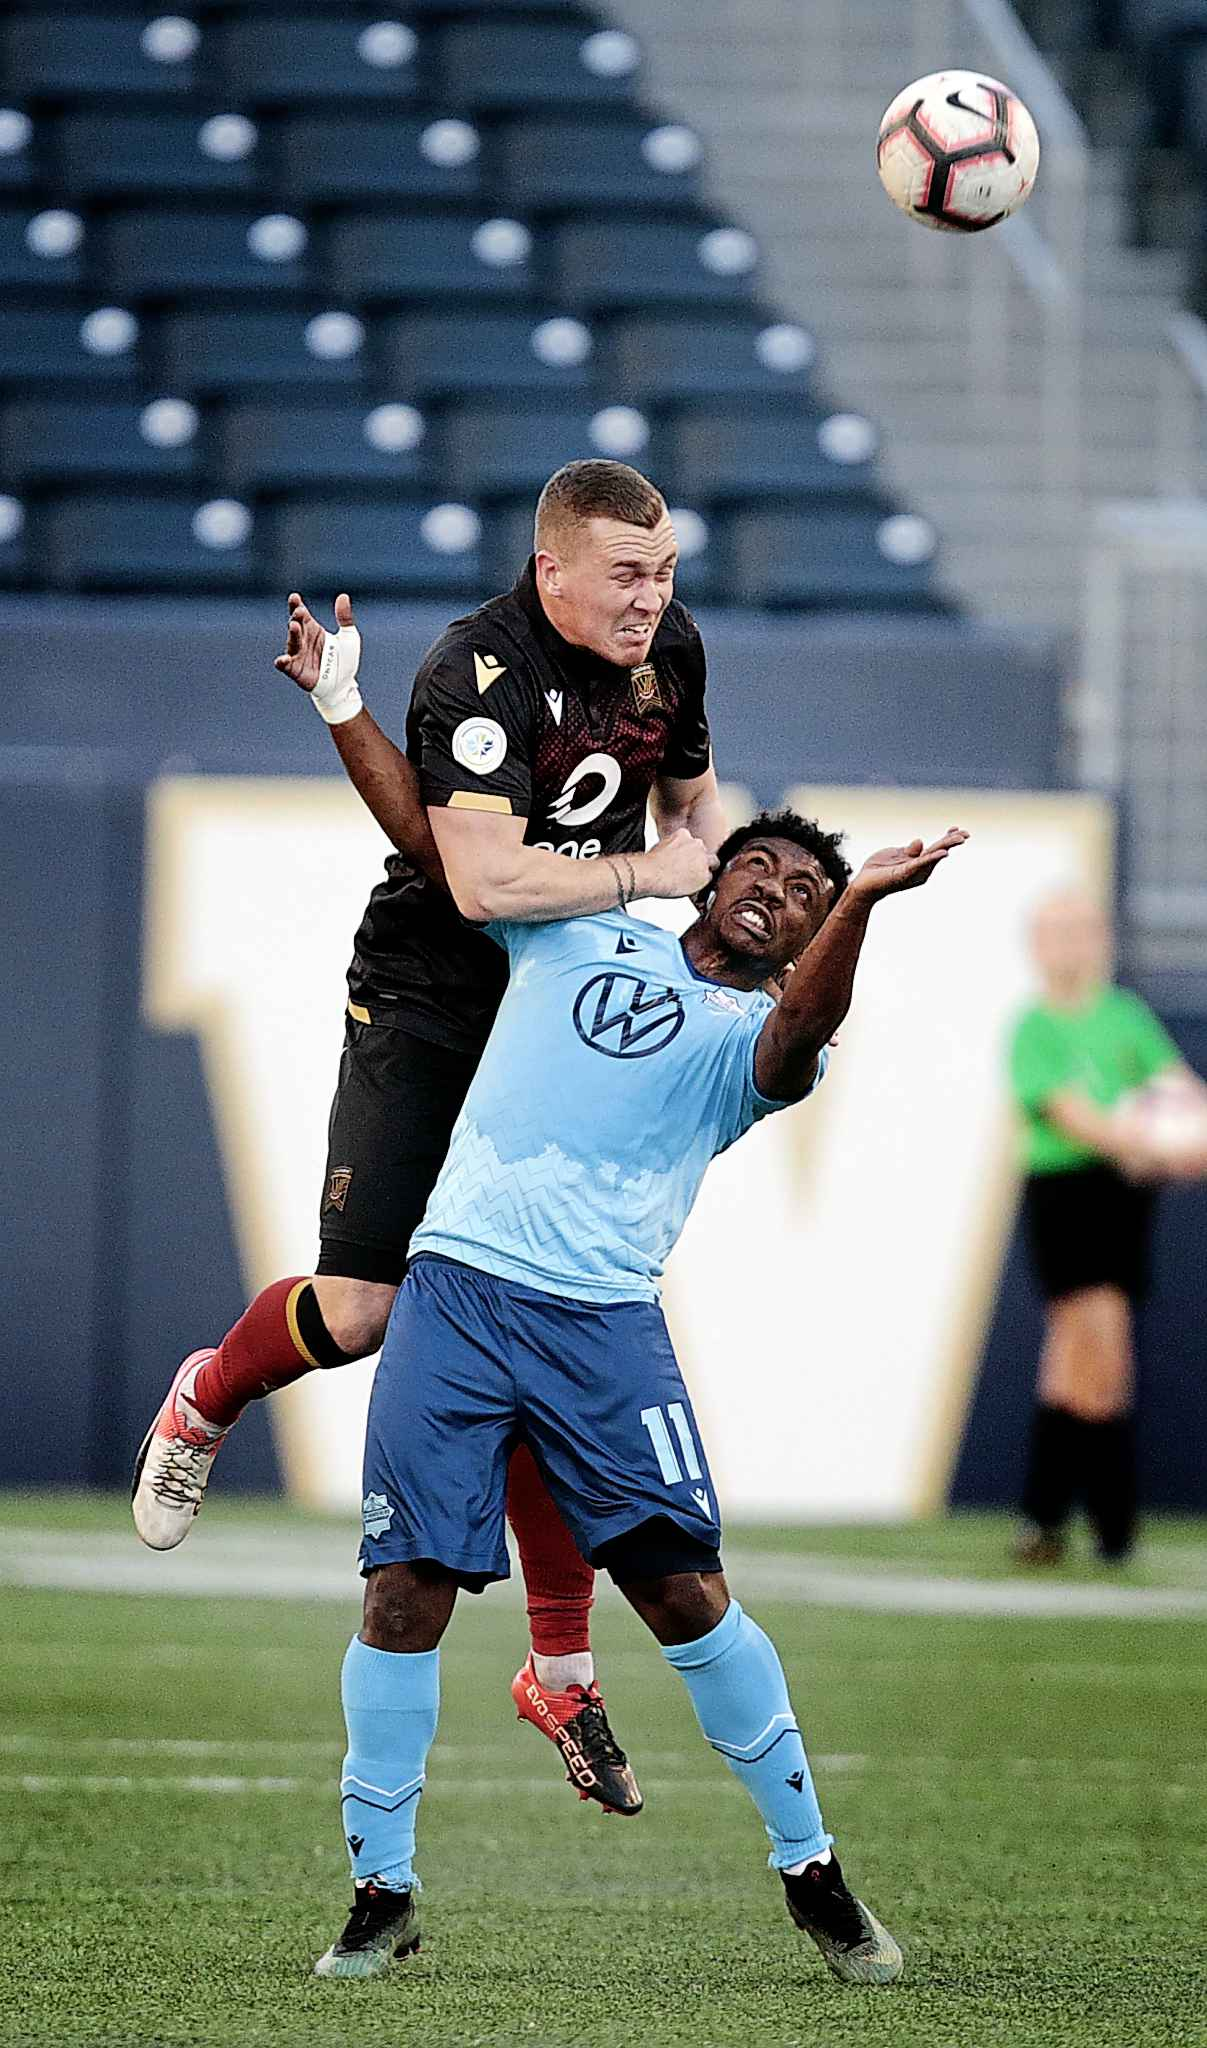 Valour FC's Adam Mitter heads the ball while holding HFX Wanderer's Akeem Garcia down on the ground at IG Field, Wednesday. (PHIL HOSSACK / WINNIPEG FREE PRESS)